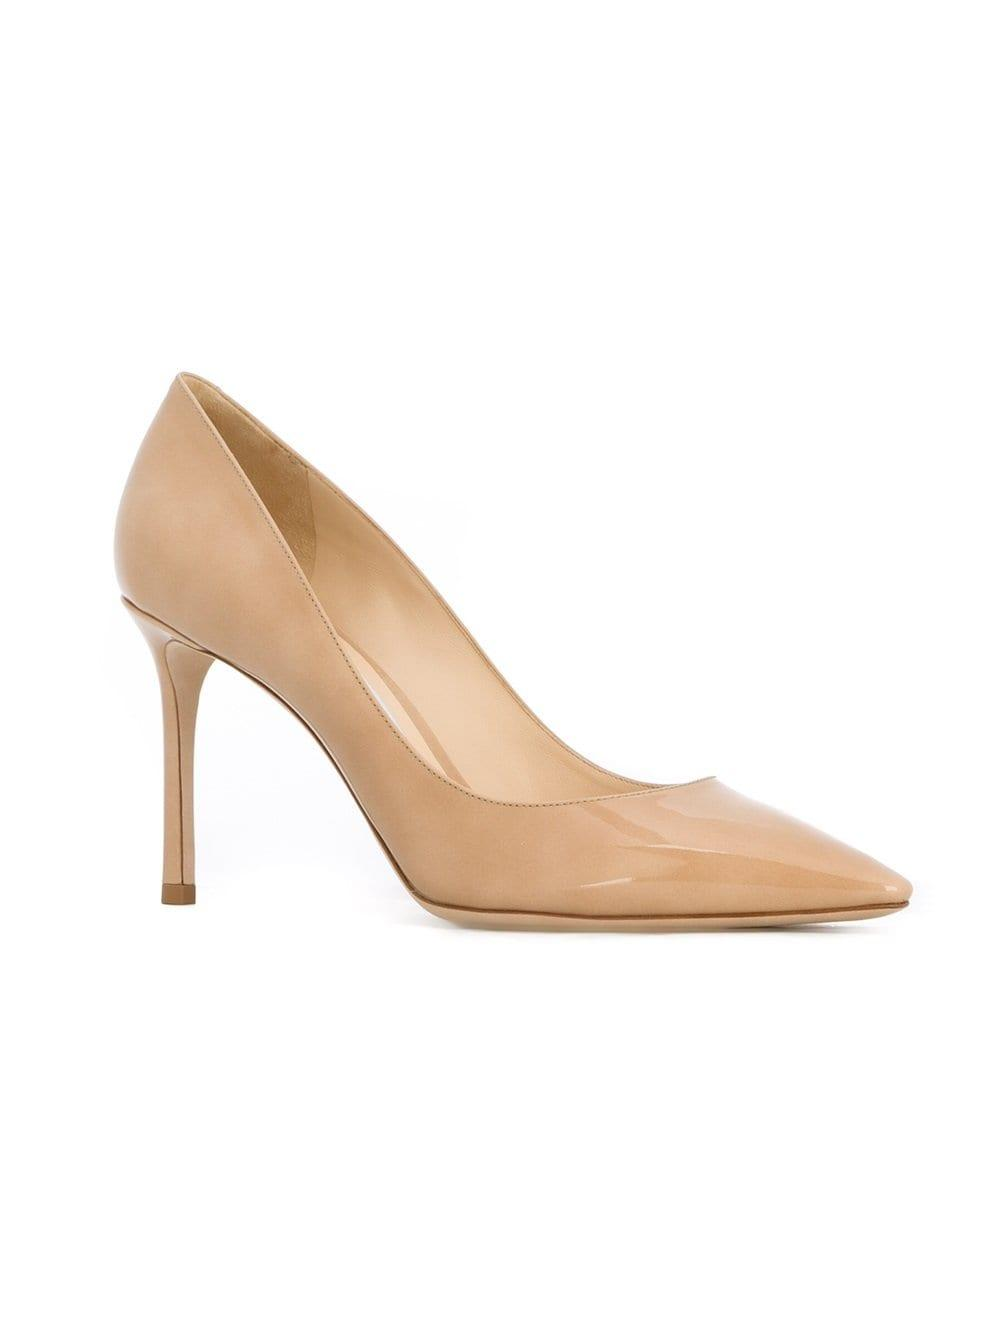 b92d4cb4f240 Lyst - Jimmy Choo Nude Romy 85 Patent Leather Pumps in Natural - Save 30%